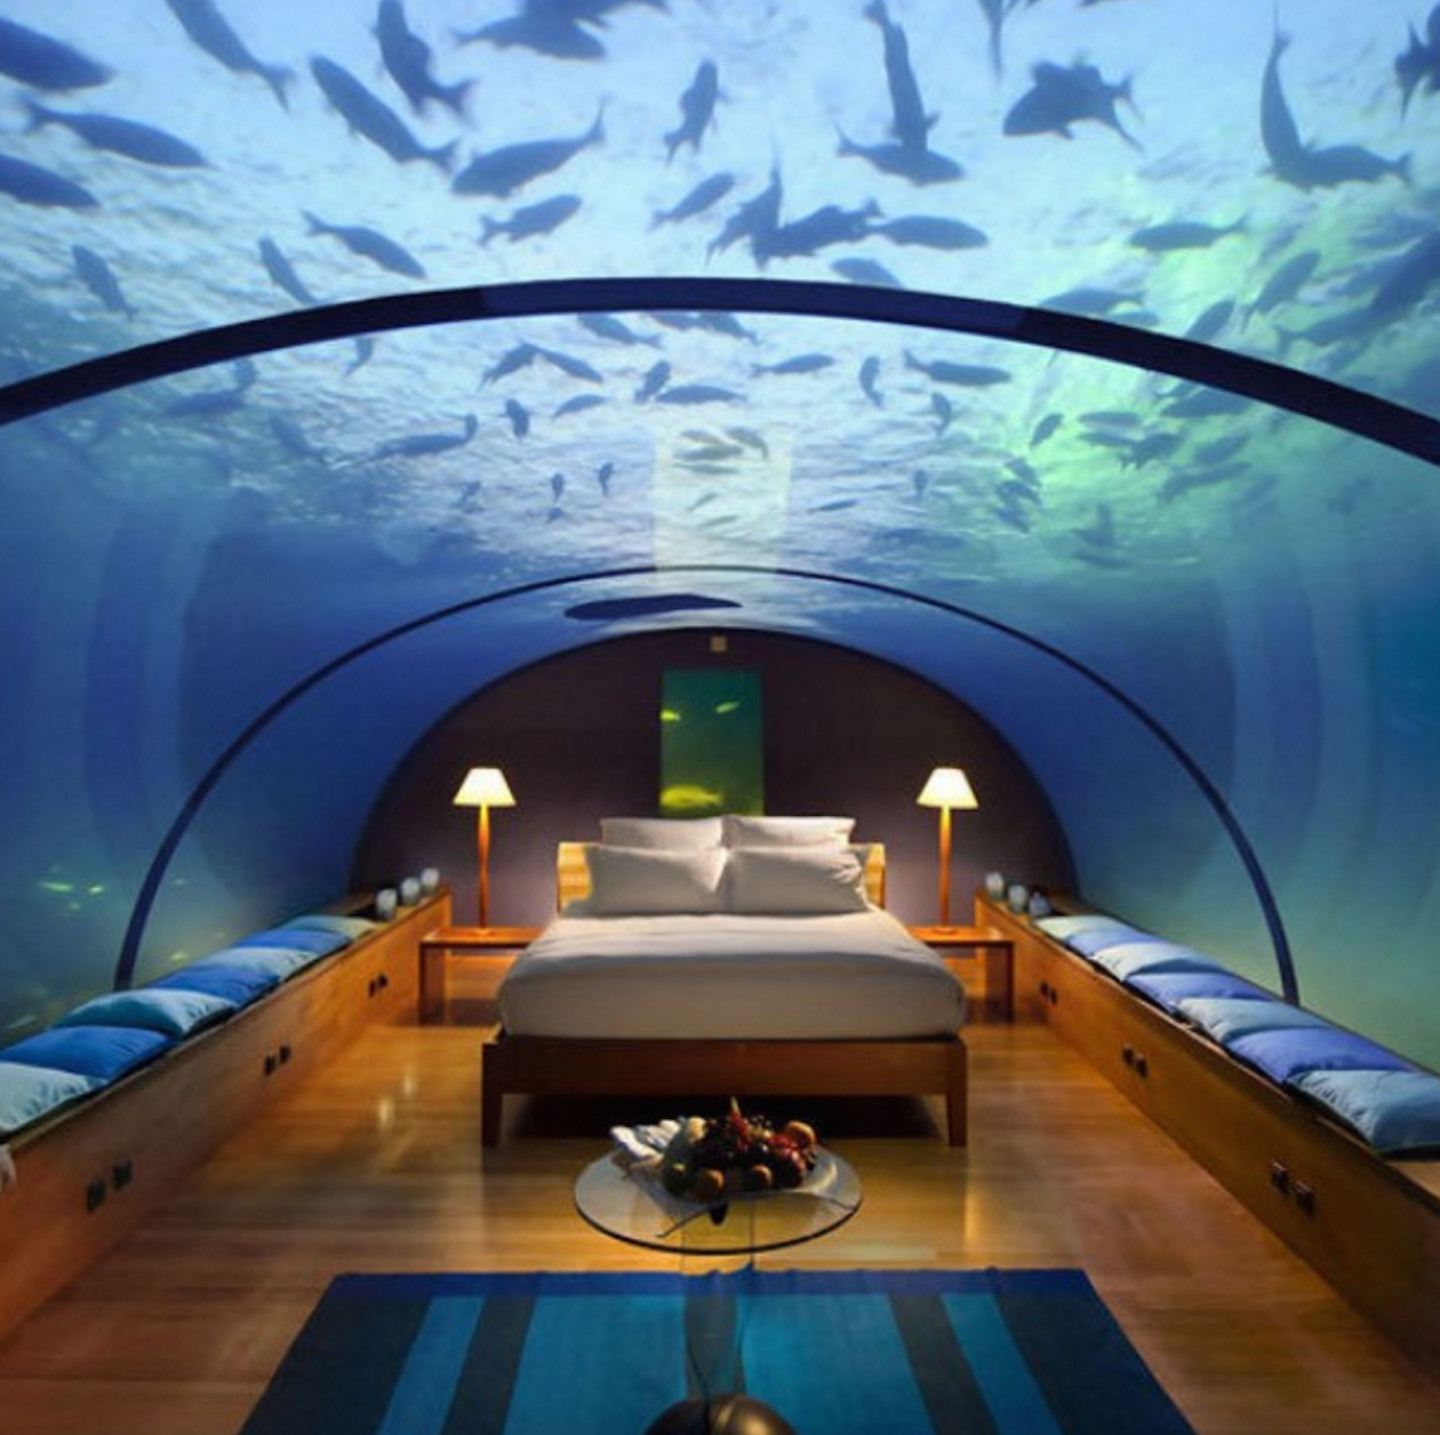 The 5 Most Expensive Hotel Rooms In The World | Tastemade